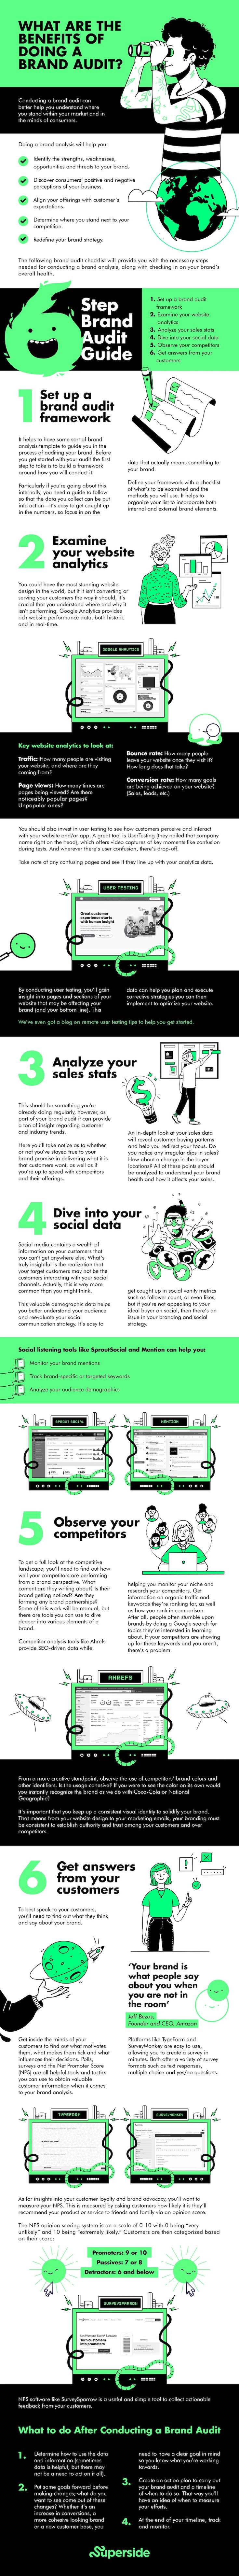 6 step brand audit guide infographic